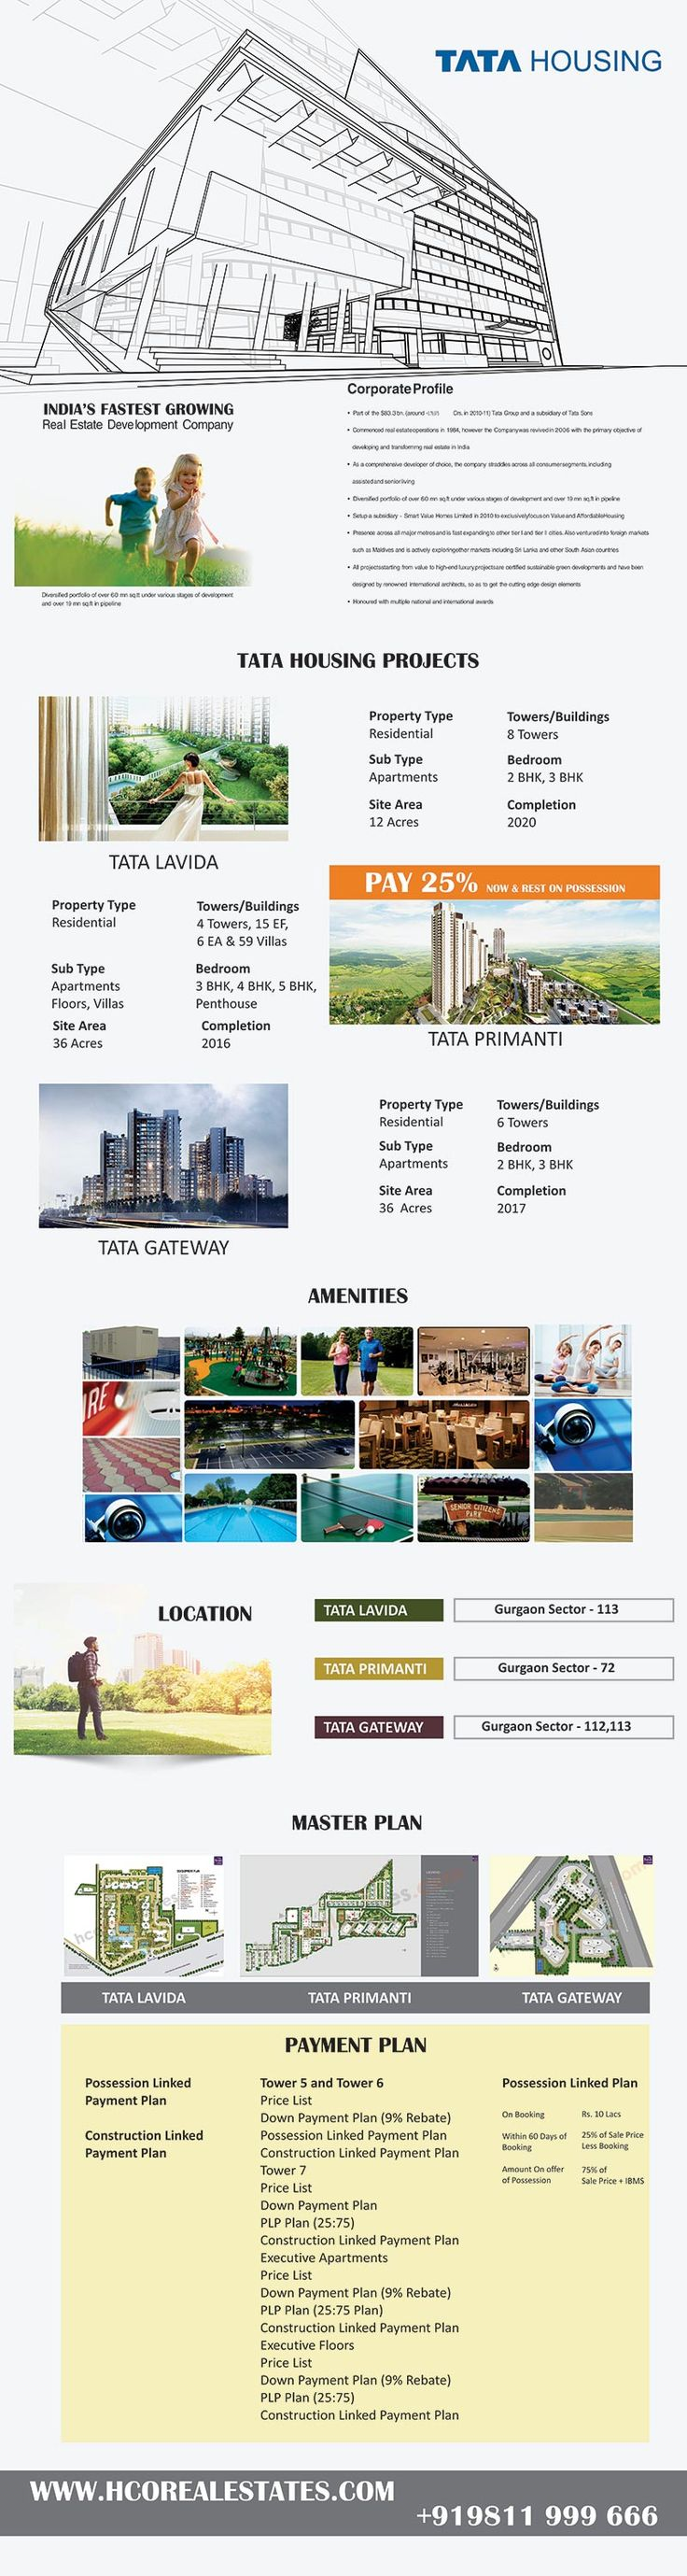 Tata Housing presents their luxurious projects in gurgaon like Tata La Vida, Tata Primanti, Tata Gurgaon Gateway, here you find apartments, vills, floors with modern amenities with east peasy payment plan. You are free to call- +91 9811 999 666 and click here to know more projects and details: https://www.hcorealestates.com/builder/tata-new-projects/